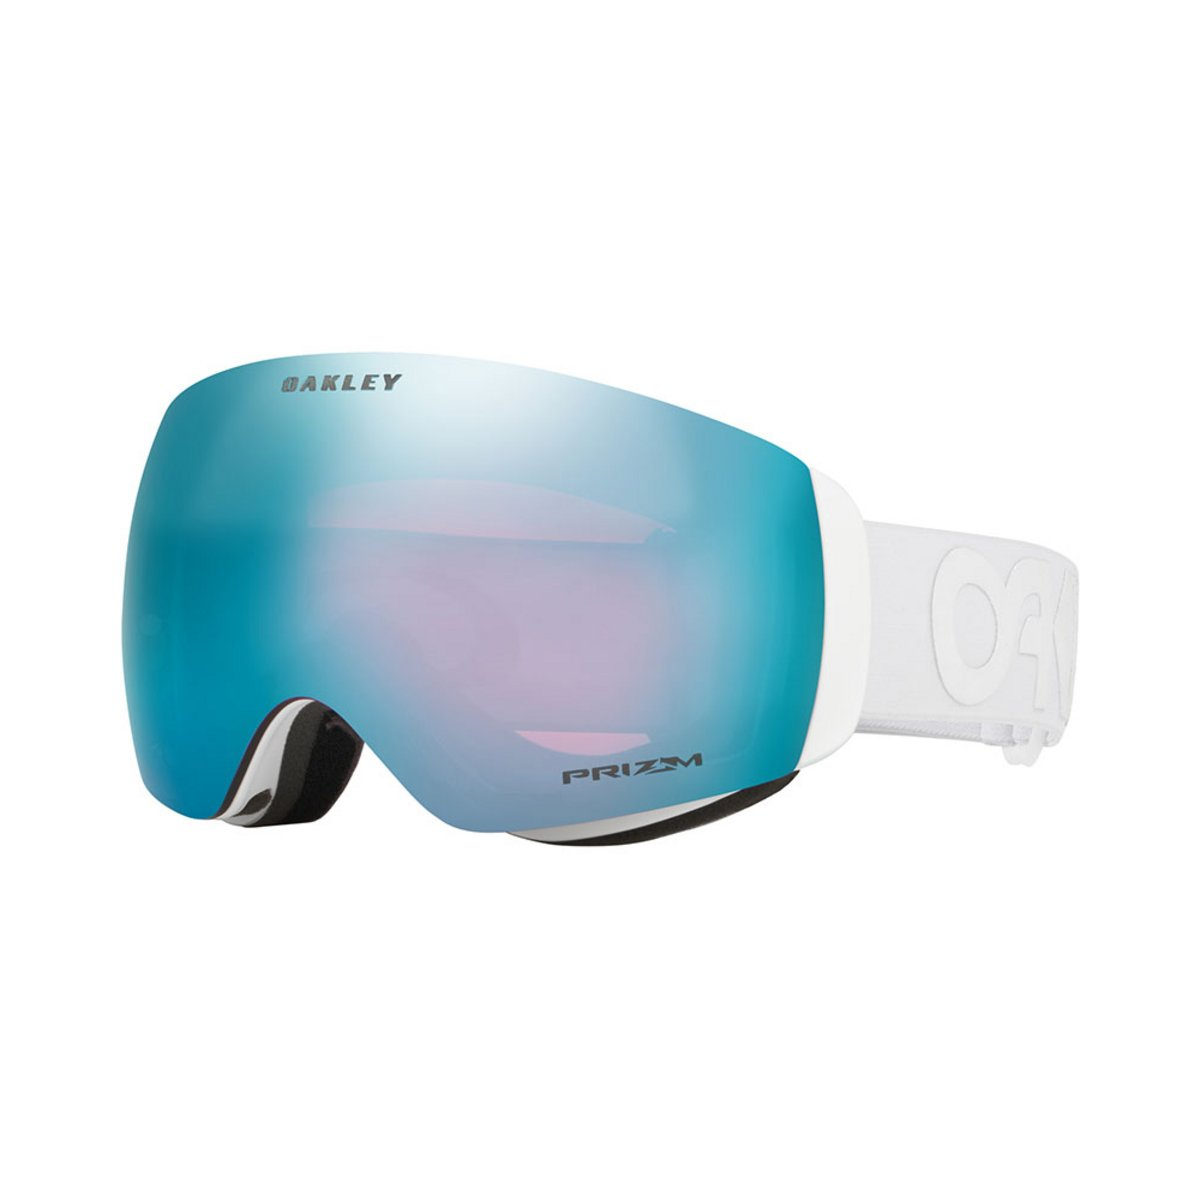 Oakley Flight Deck XM Factory Pilot Whiteout / Prizm Sapphire Iridium Goggles 2019 / 2020 0